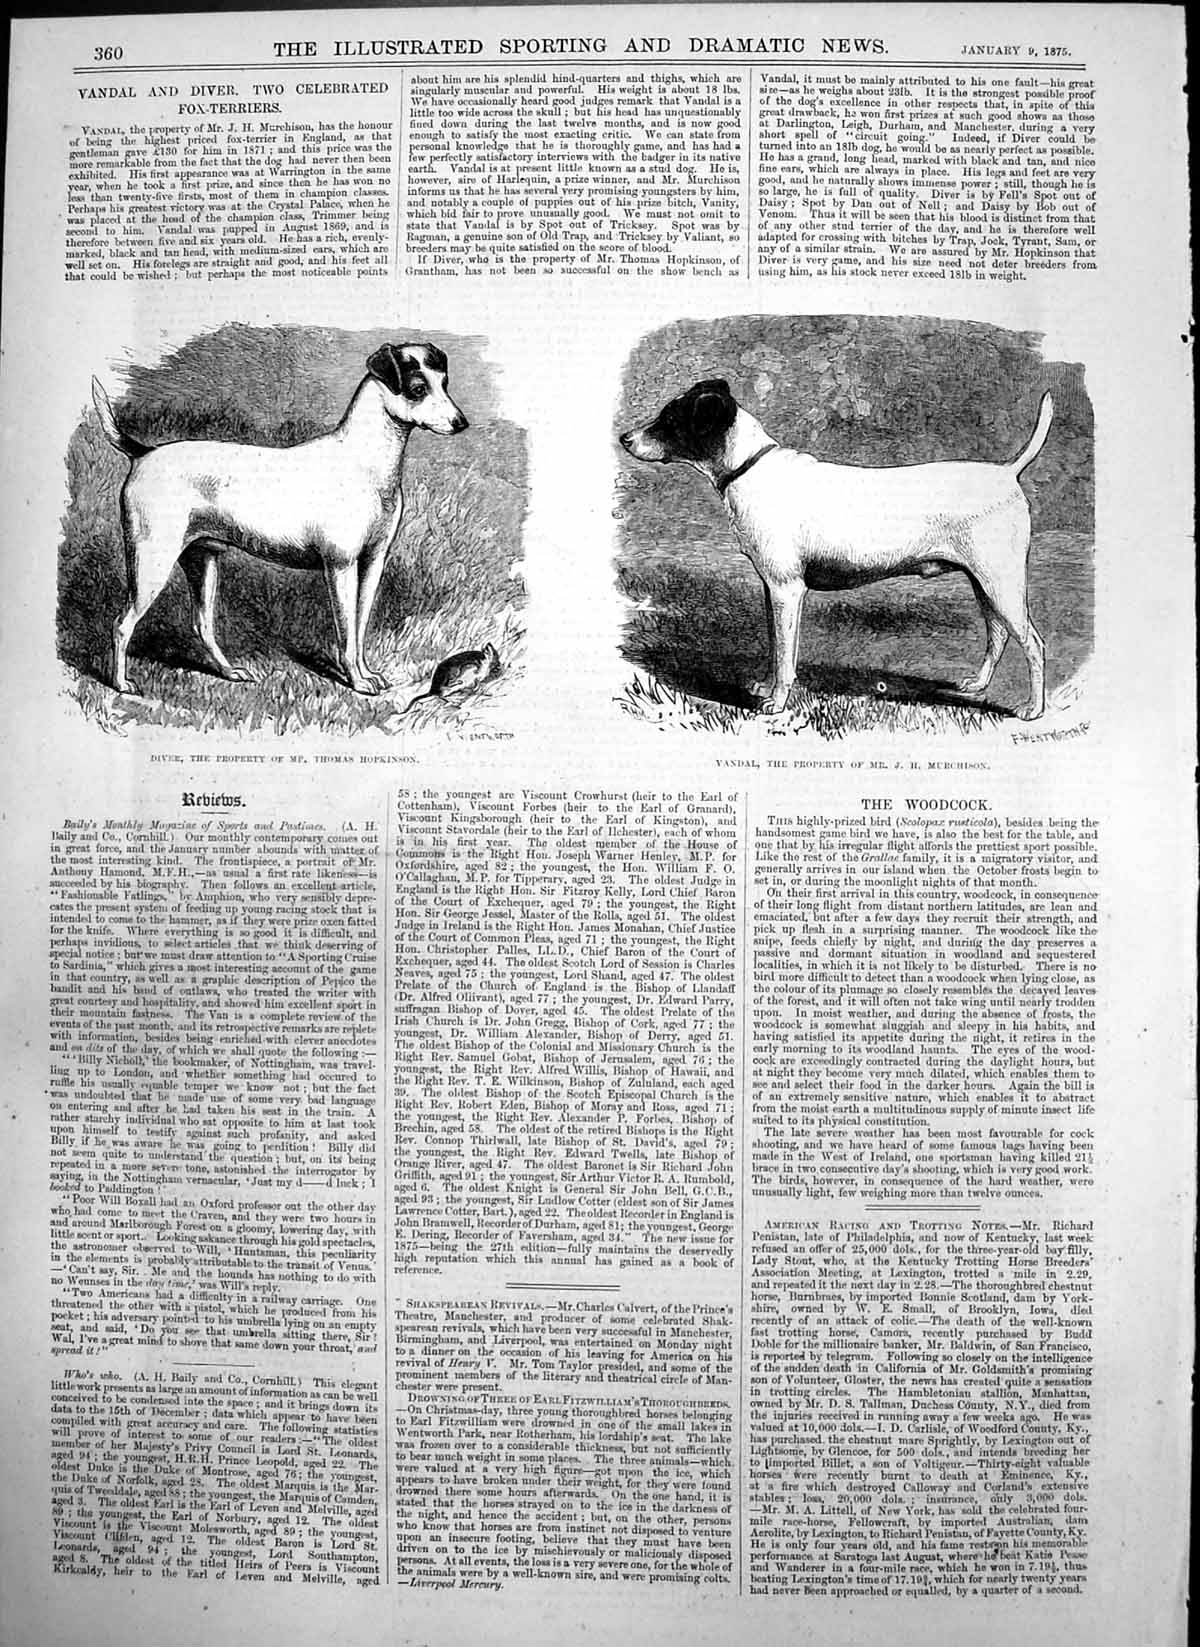 [Print Diver Dog Mp Thomas Hopkinson Vandal Dog Mr J H Murchison 1875 360T122 Old Original]